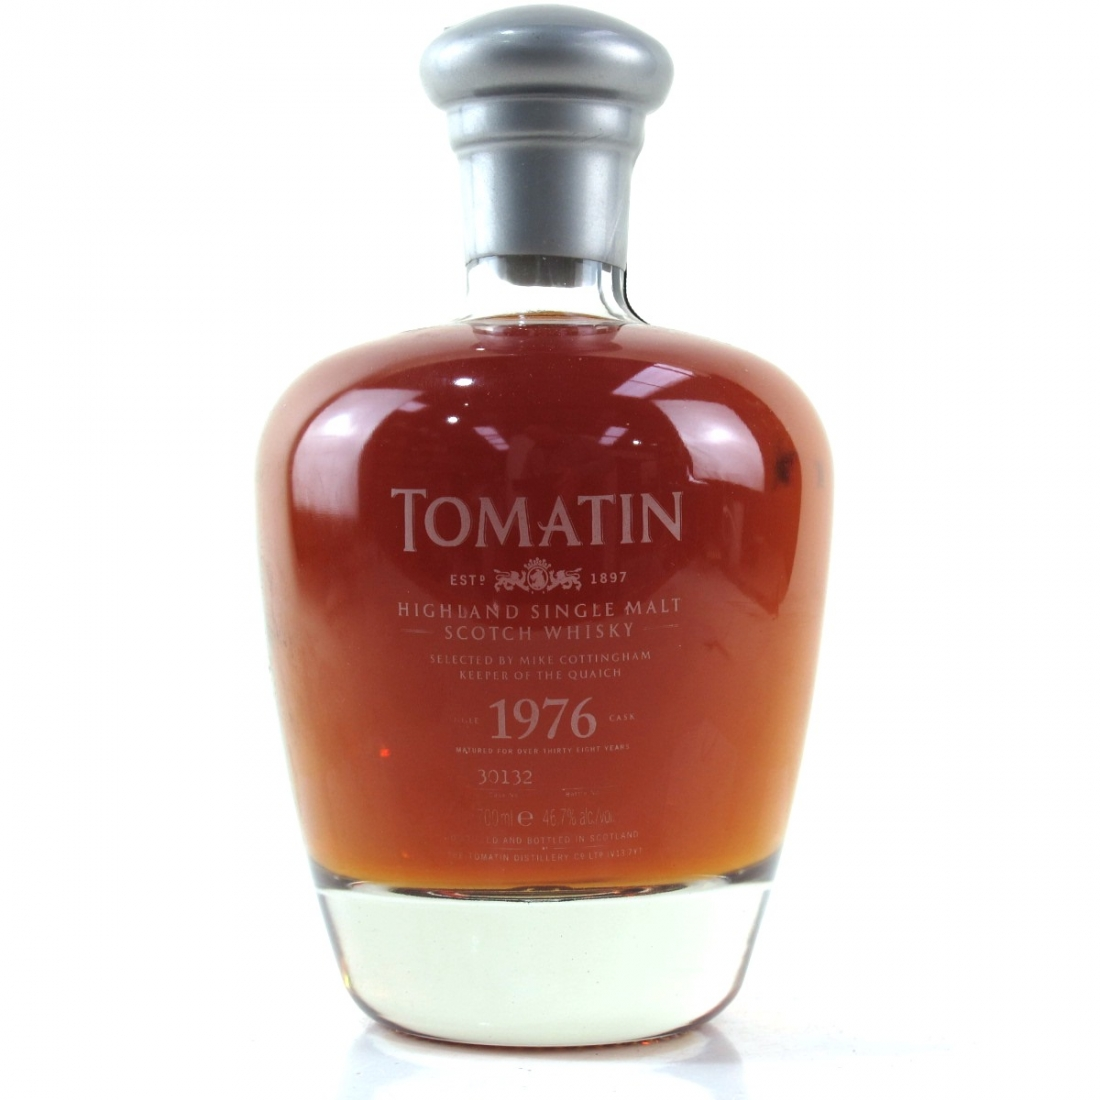 Tomatin 1976 Single Cask 38 year Old #30132